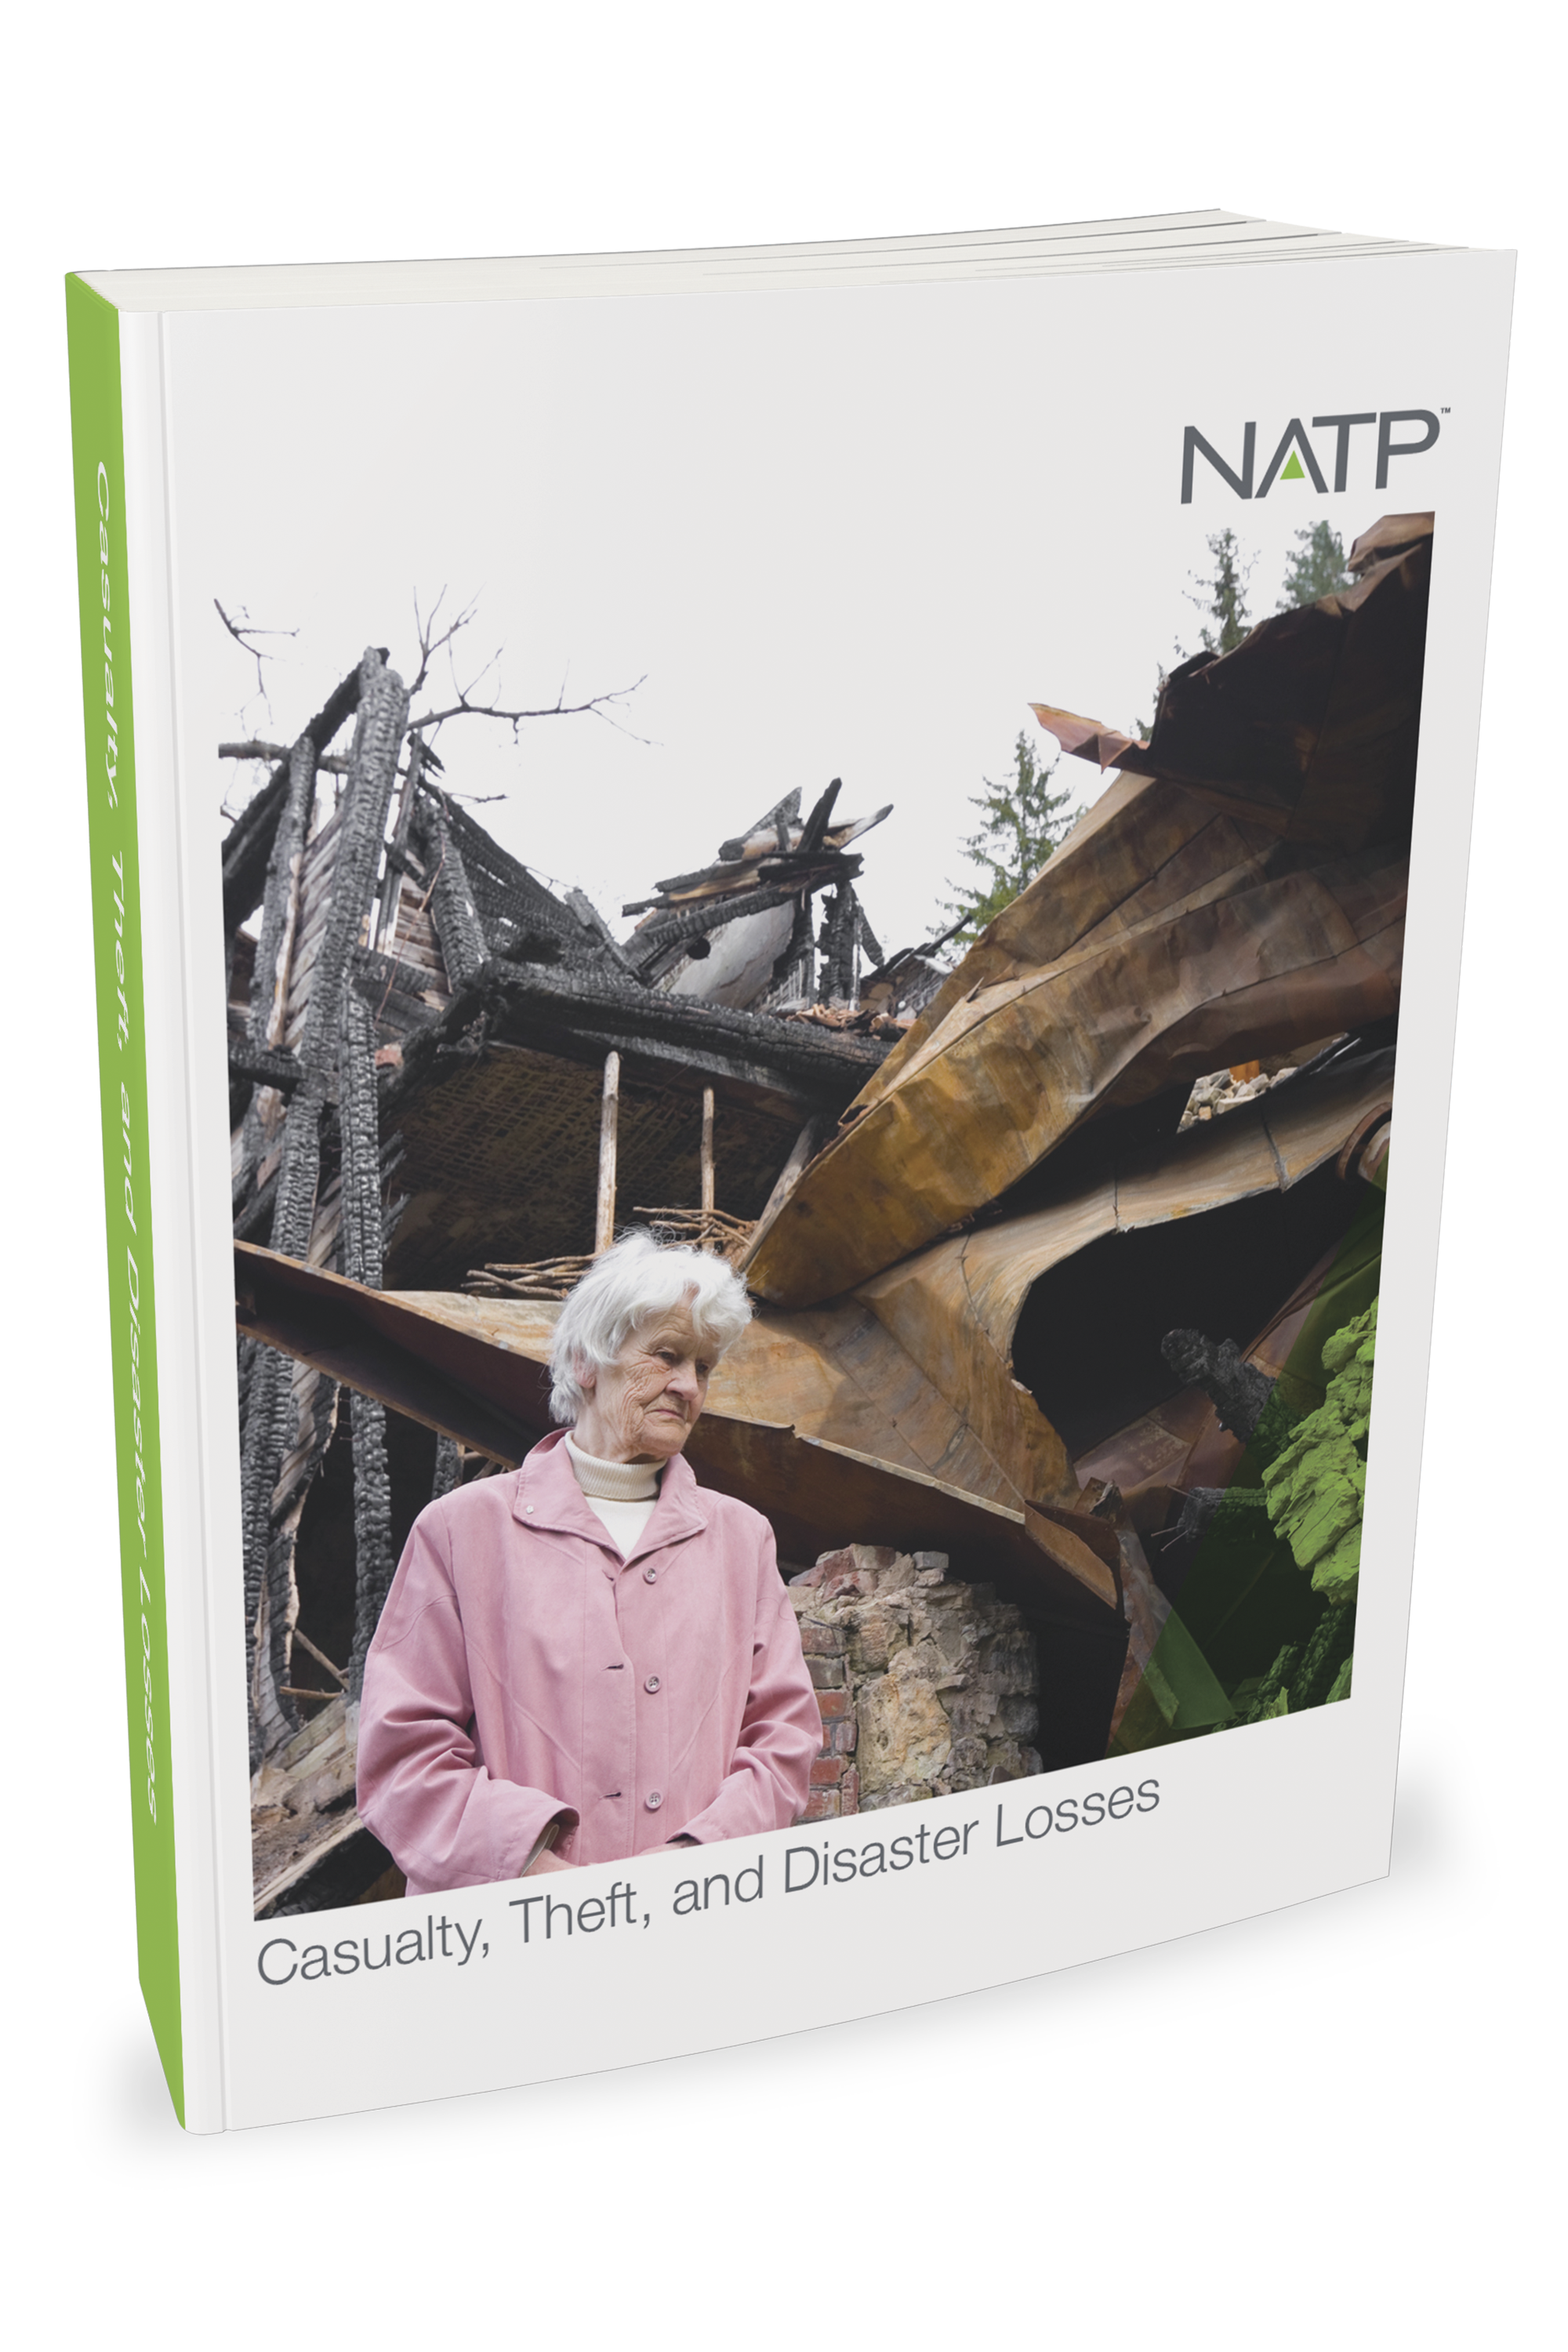 Casualty, Theft and Disaster Losses Textbook (2018) – #4815